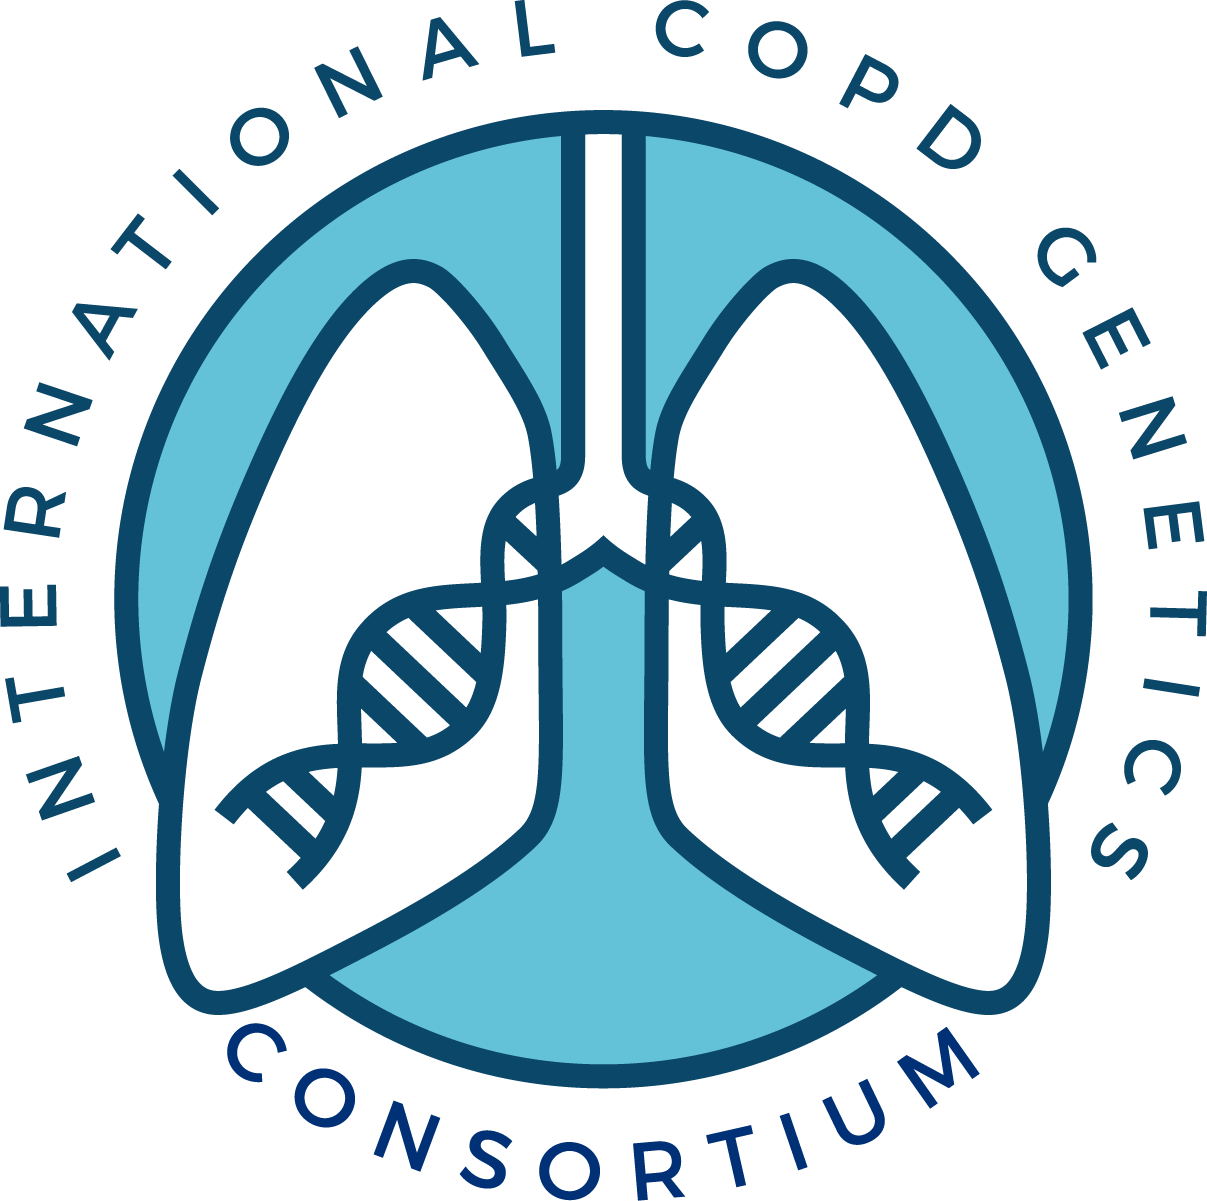 Logo for an international research collaboration